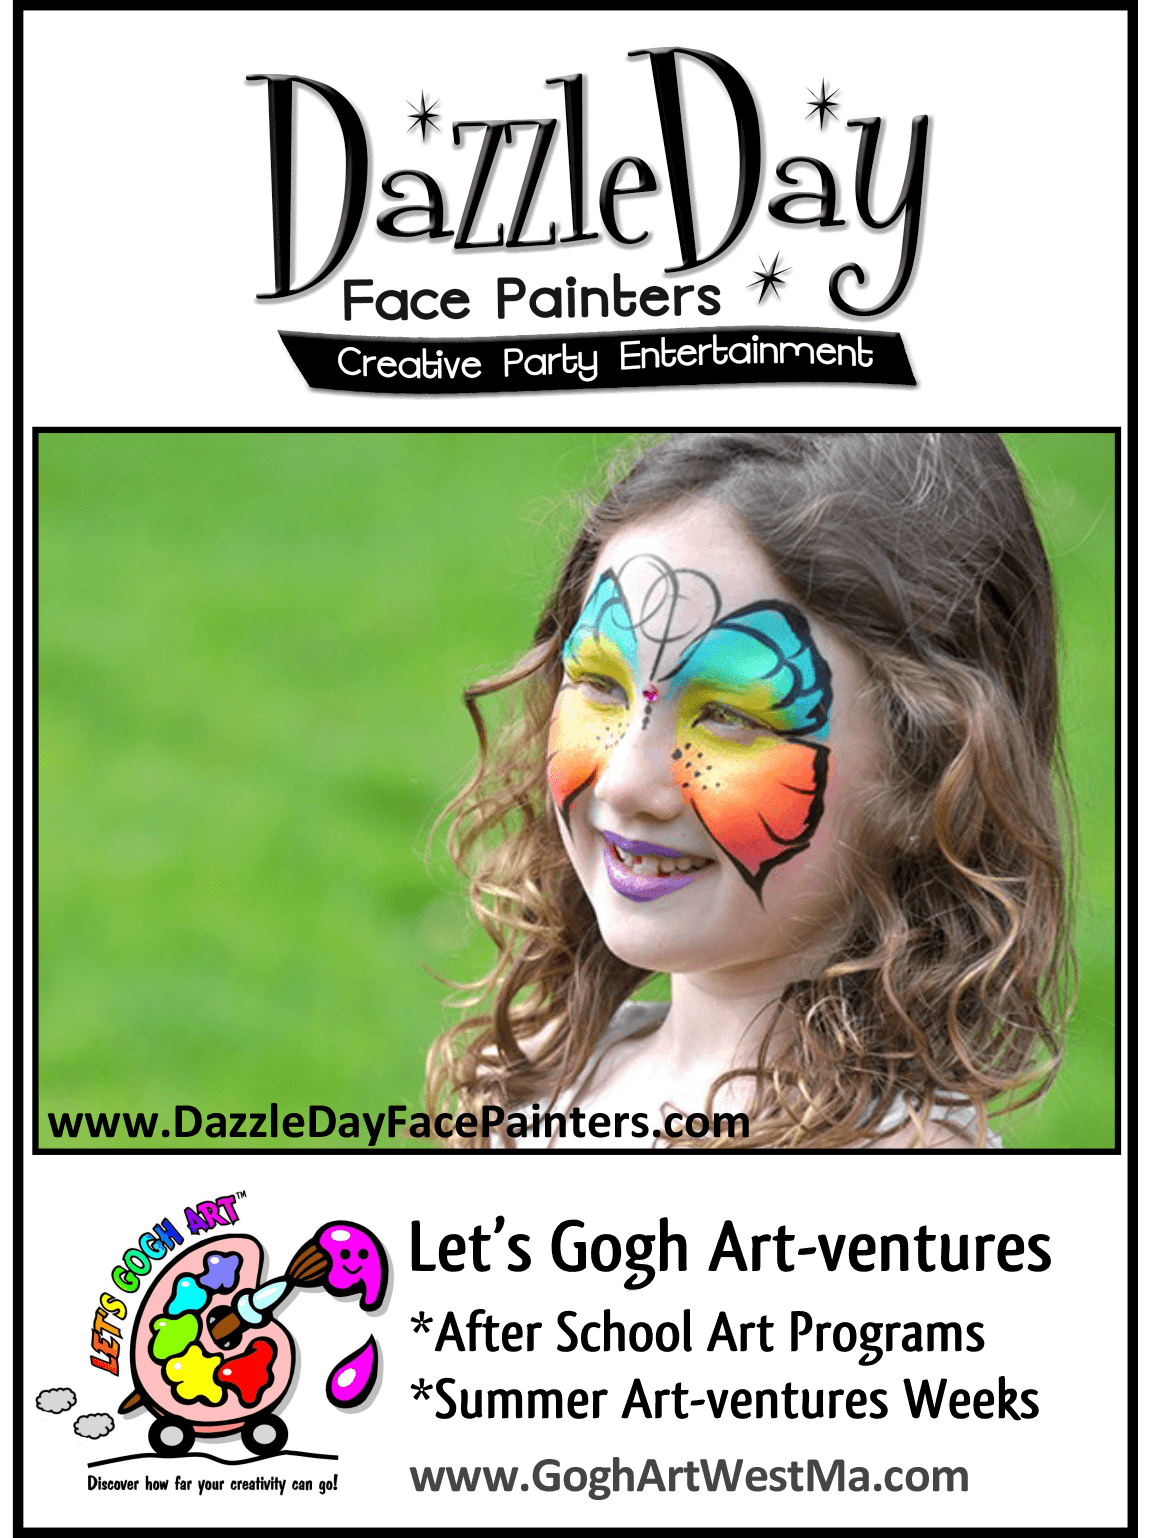 Lets Gogh Art and Dazzle Day